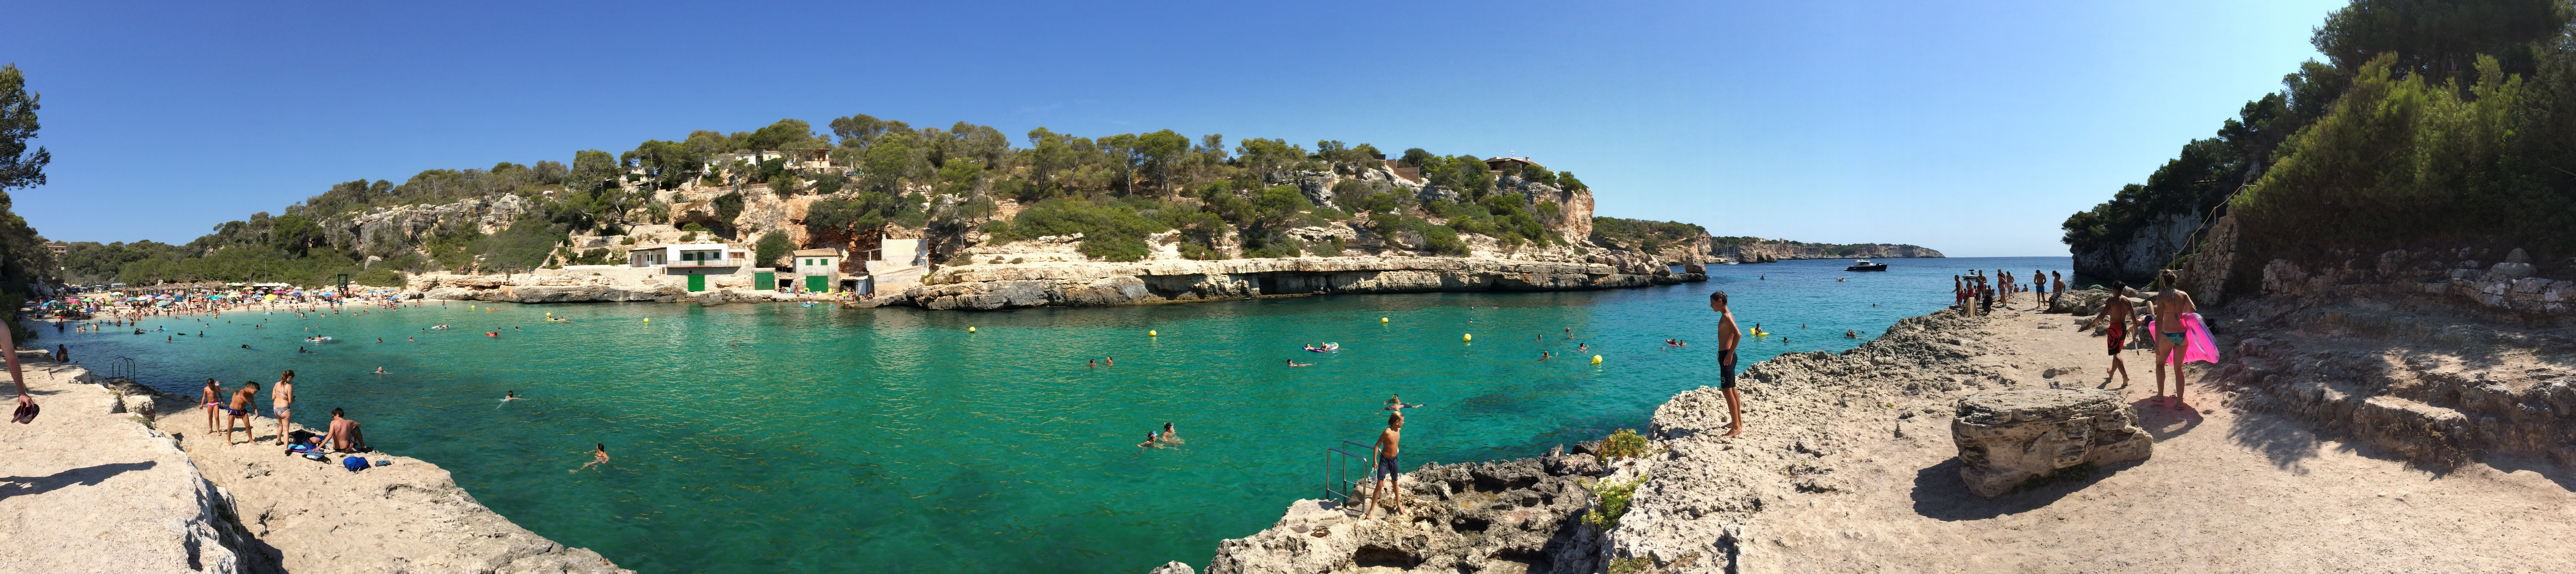 Cala Llombards im August 2016